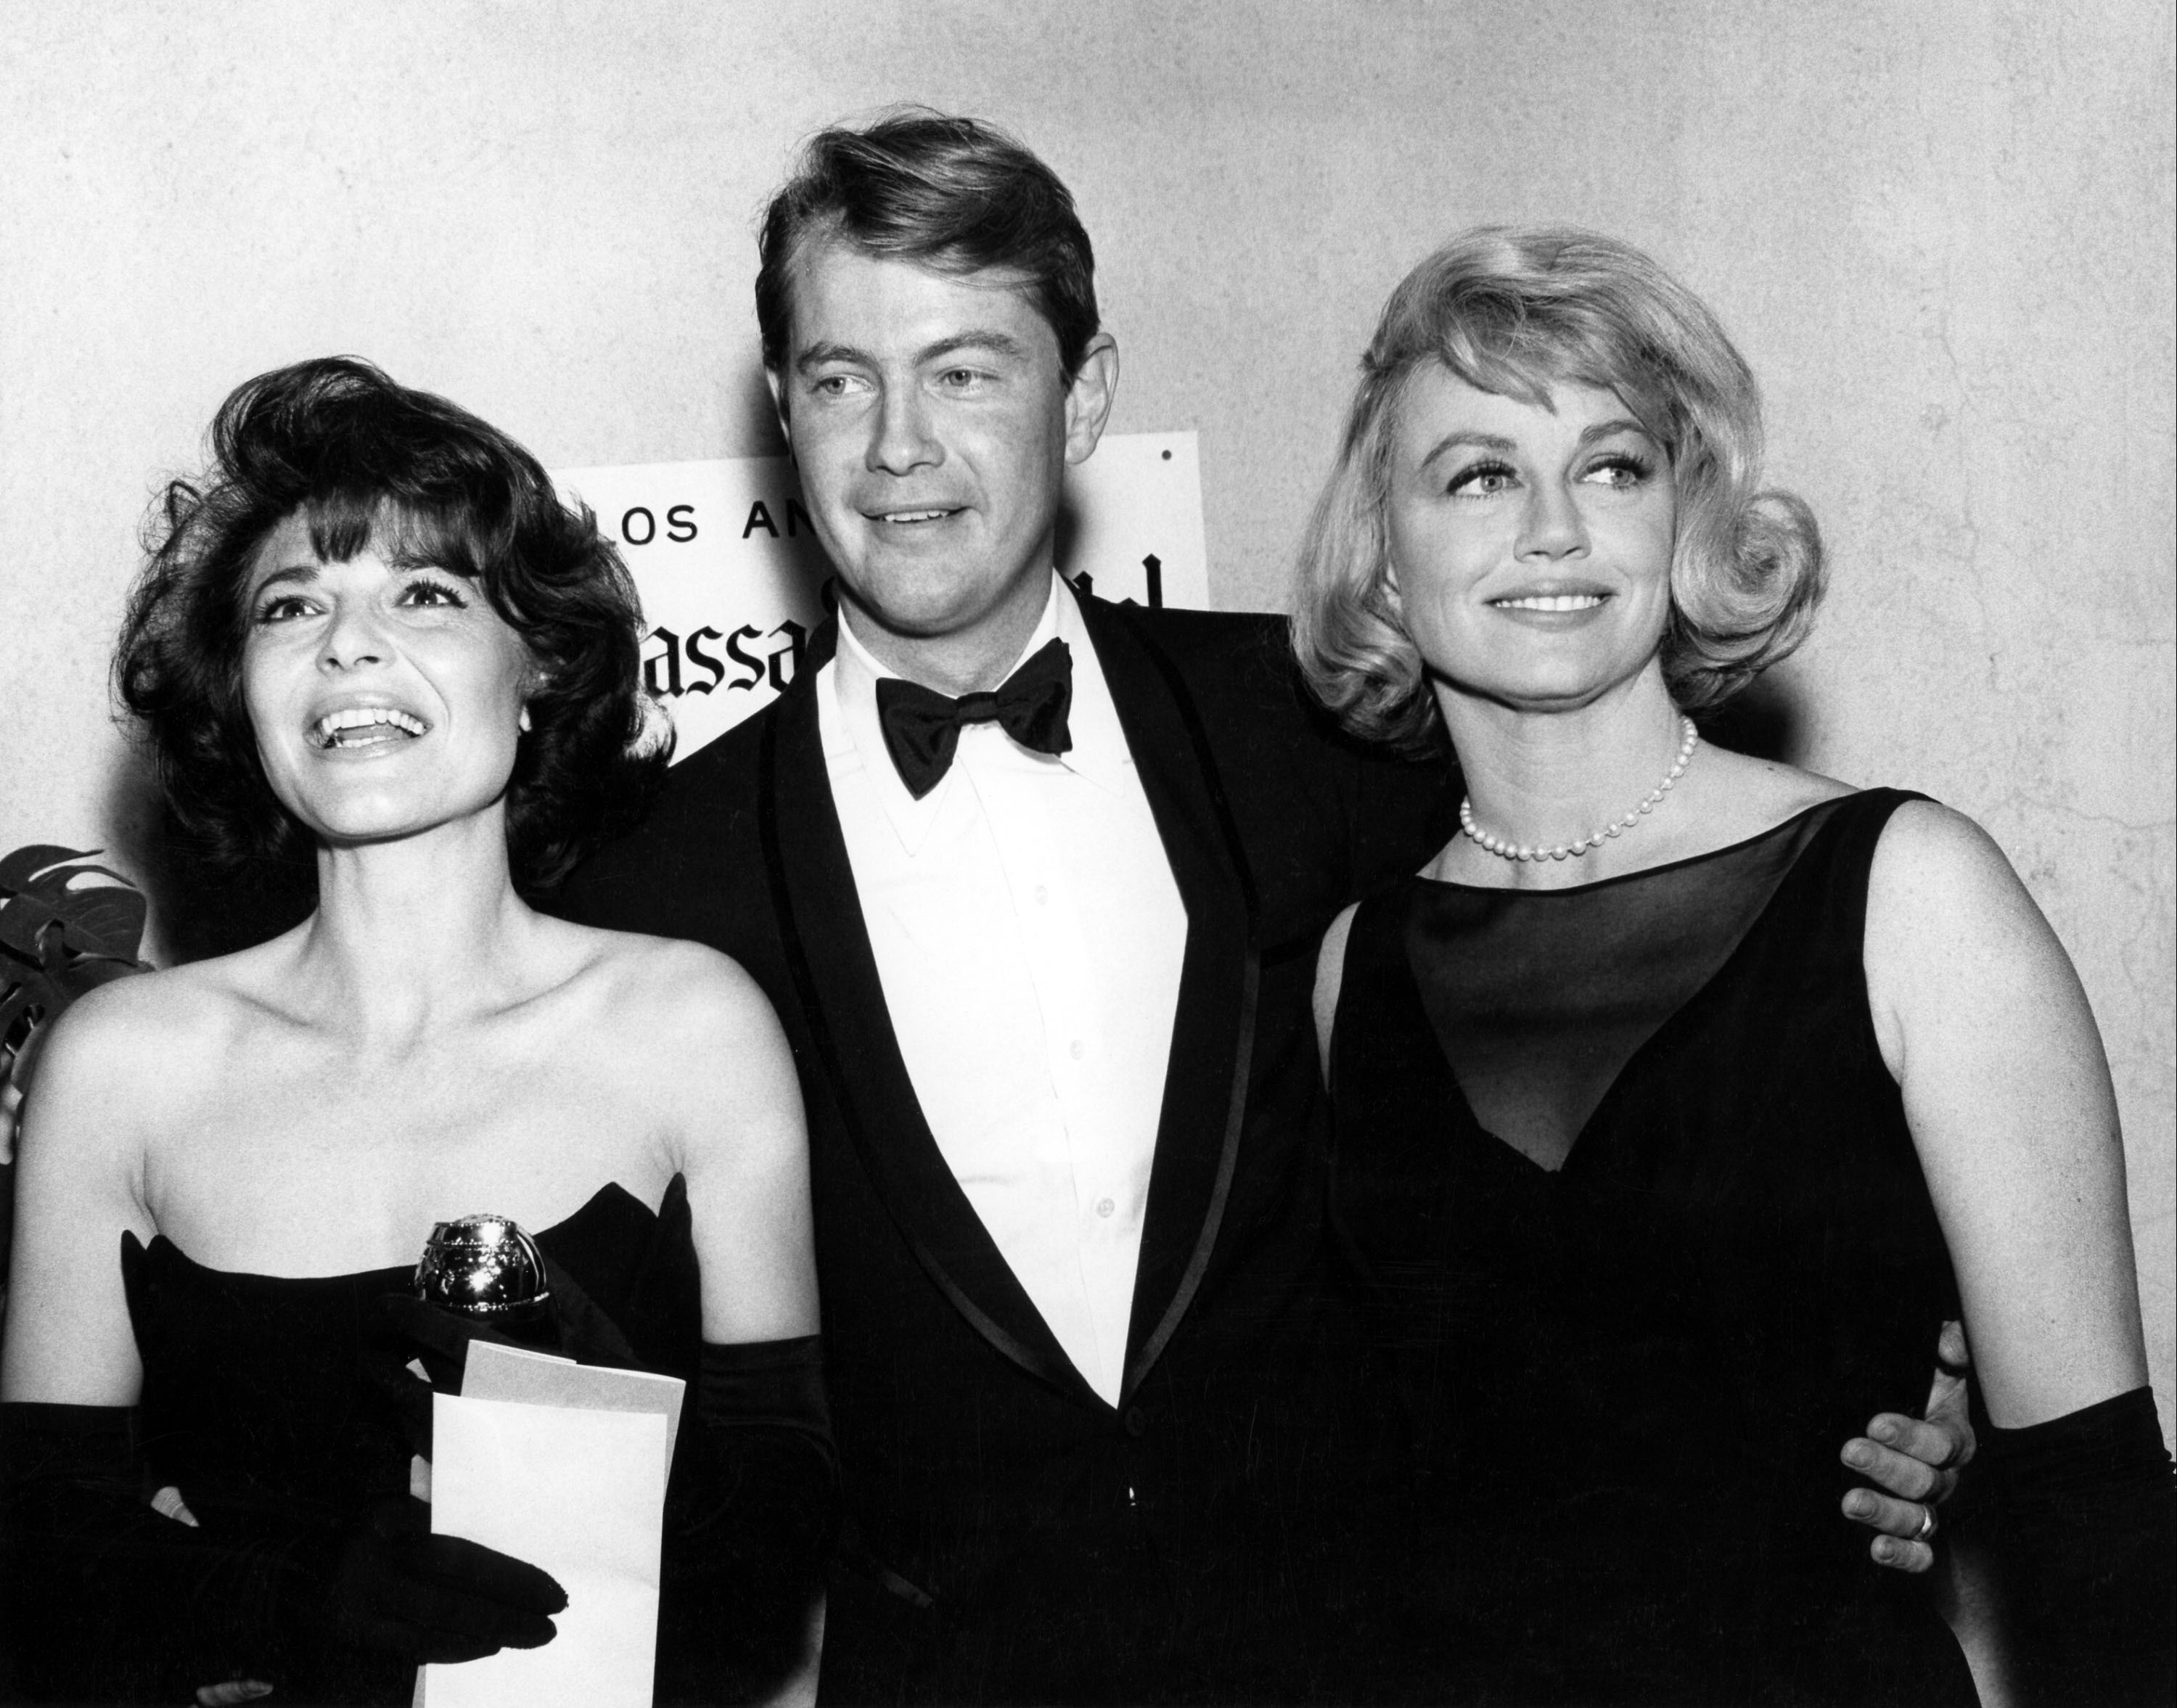 "Anne Bancroft, Troy Donahue, Dorothy Malone in 1965                  Anne Bancroft (best motion picture actress for ""The Pumpkin Eater"") with her Golden Globe.                                    Featuring: Anne Bancroft, Troy Donahue, Dorothy Malone in 1965                  When: 09 Jan 2013                  Credit: WENN.com                                    **WENN does not claim any ownership including but not limited to Copyright or License in the attached material. Fees charged by WENN are for WENN's services only, and do not, nor are they intended to, convey to the user any ownership of Copyright or License in the material. By publishing this material you expressly agree to indemnify and to hold WENN and its directors, shareholders and employees harmless from any loss, claims, damages, demands, expenses (including legal fees), or any causes of action or allegation against WENN arising out of or connected in any way with publication of the material.**"